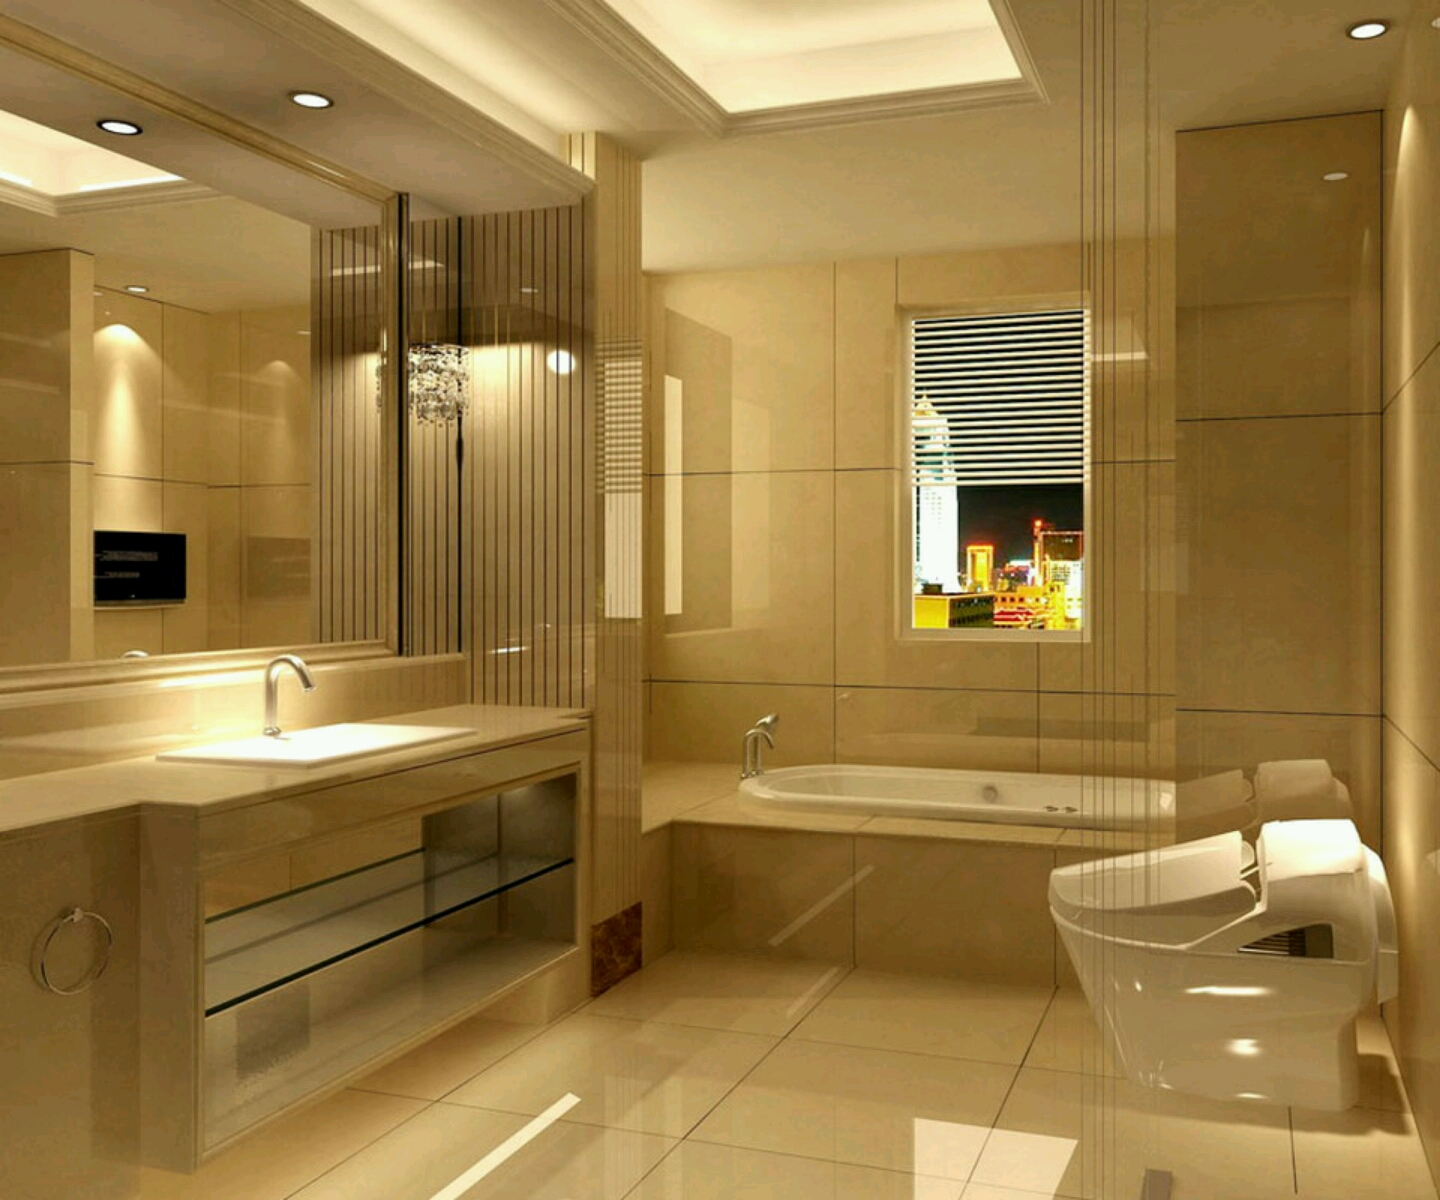 Modern bathrooms setting ideas furniture gallery for Sophisticated bathroom design